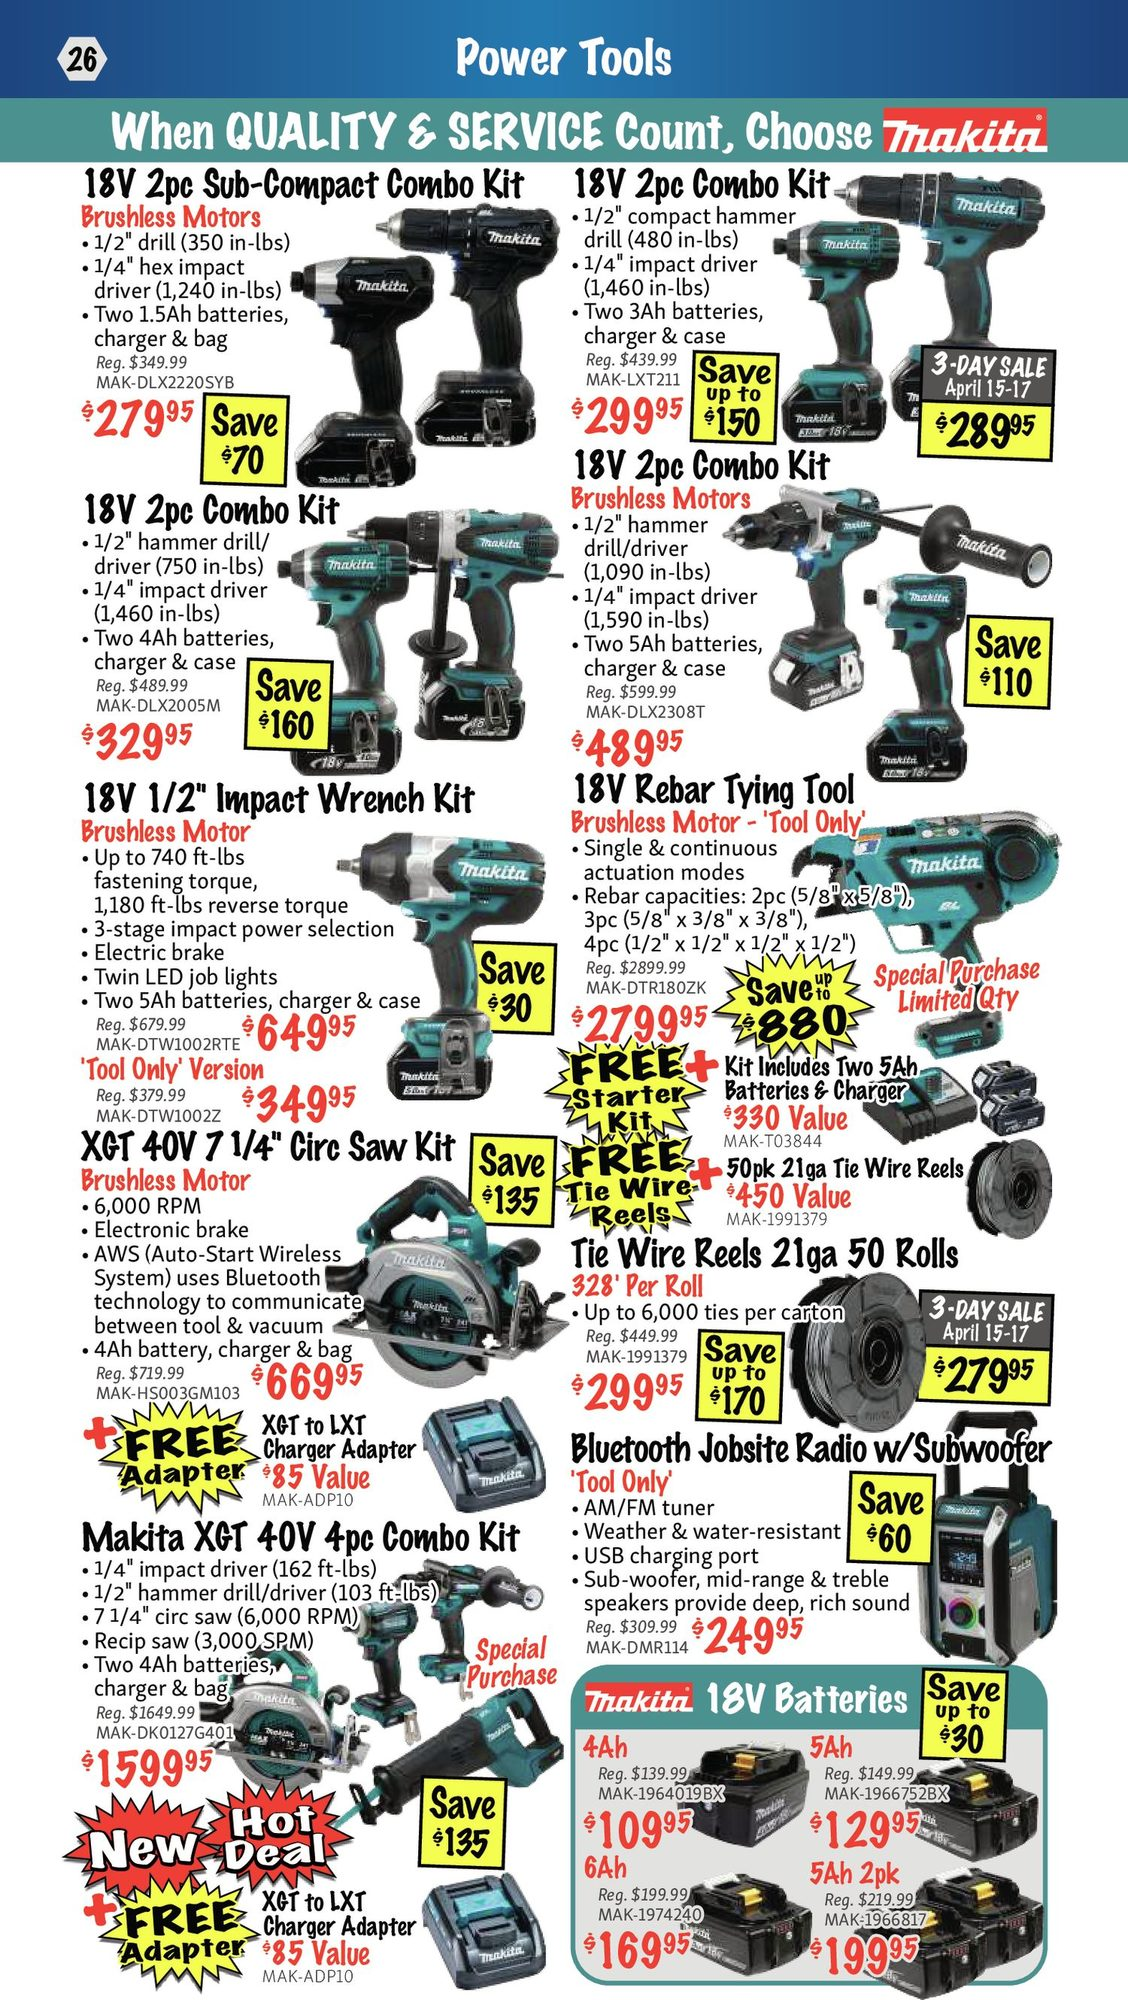 KMS Tools - Hand Tools, Air Tools & Compressor Sale - Page 26